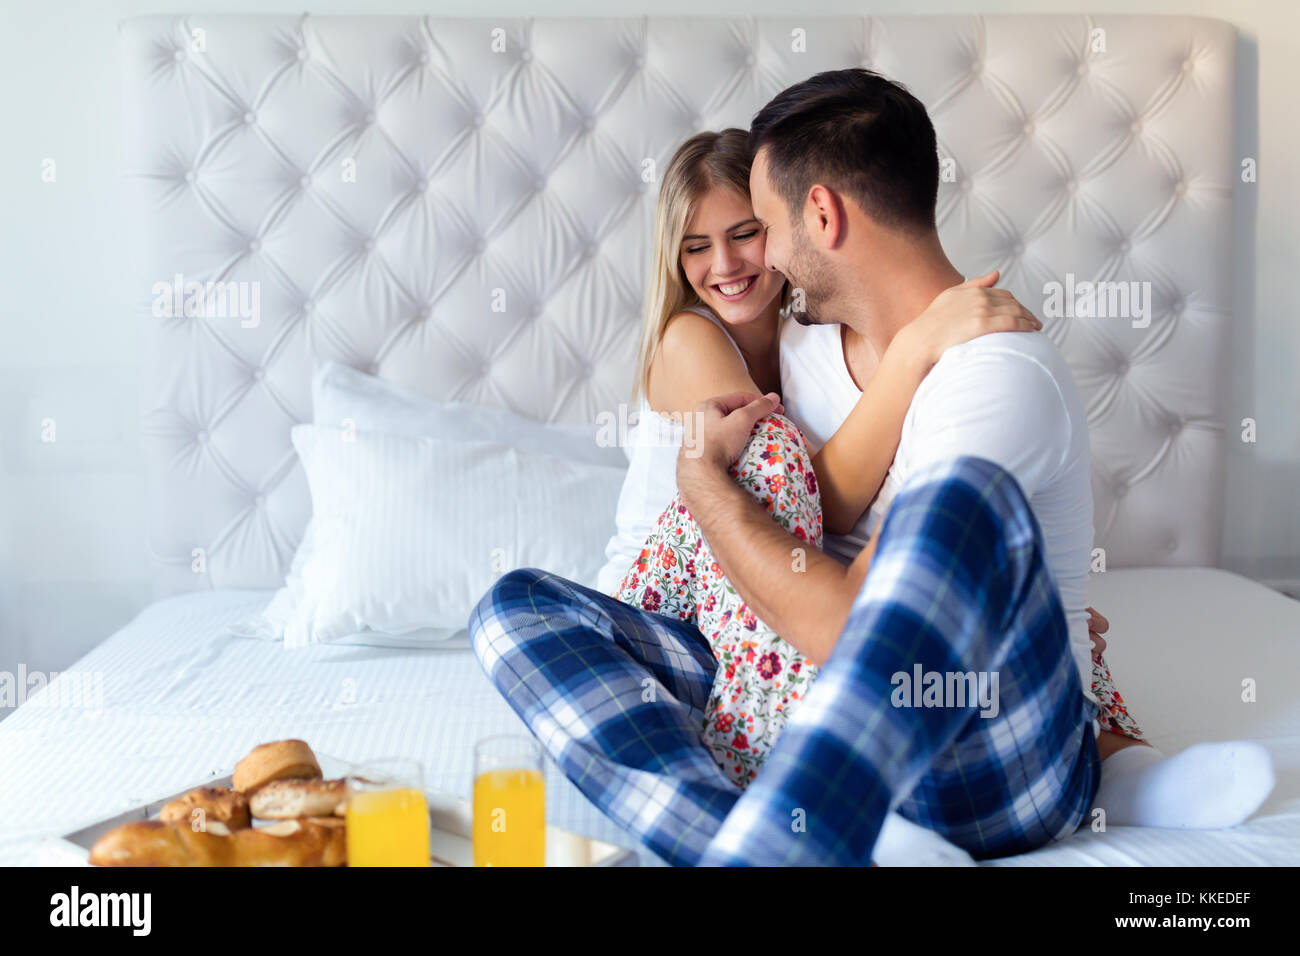 kissing couples romantic in bed couple kissing bed stock photos couple kissing bed stock 2856